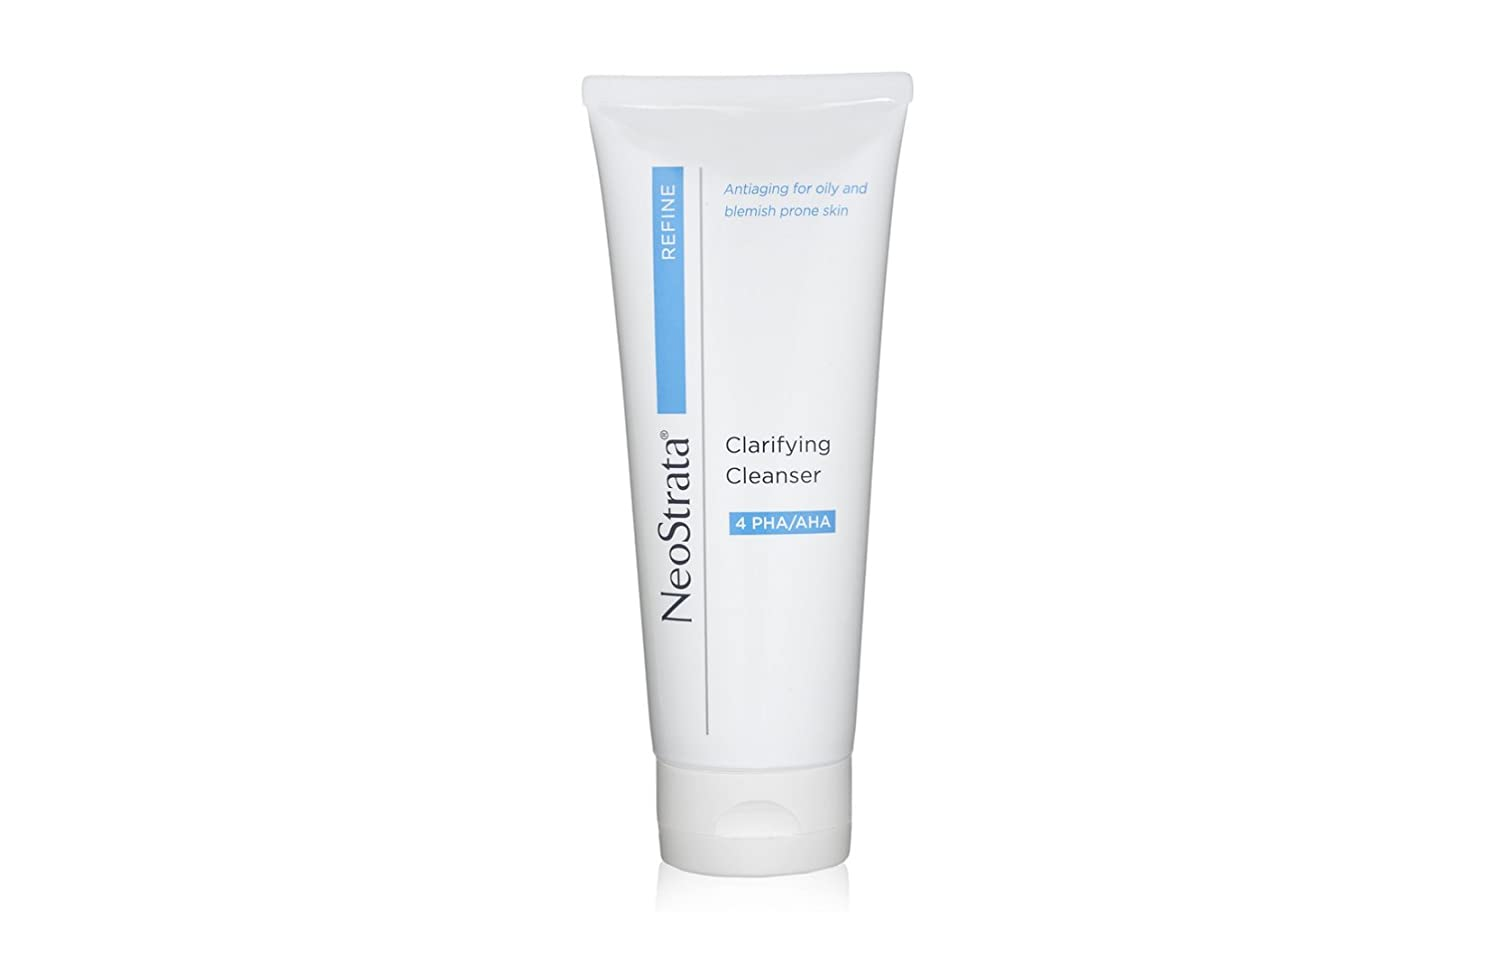 NeoStrata Clarifying Cleanser, 6.8 oz